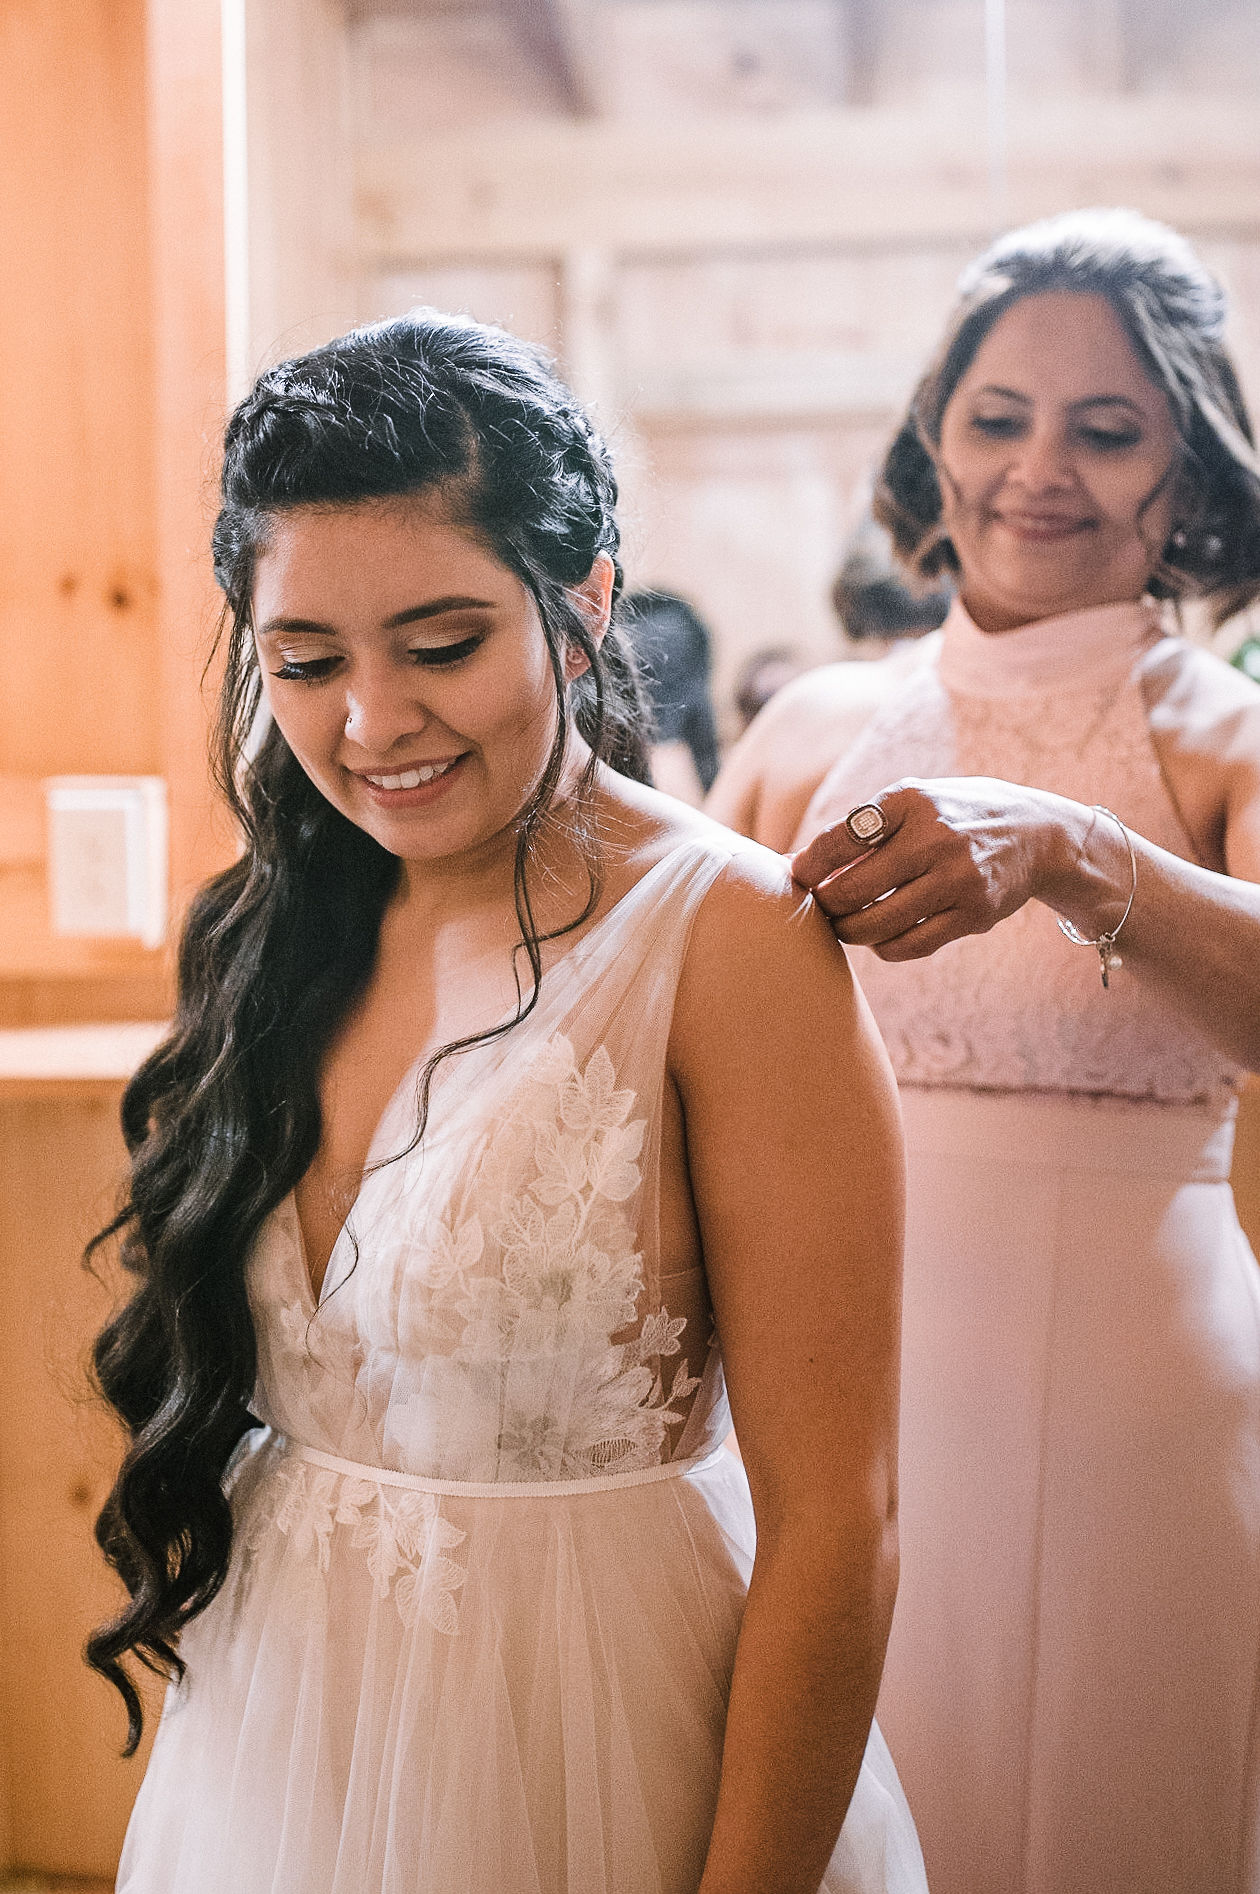 mother of the bride helping bride into wedding dress at the Faithbrooke Barn & Vineyards